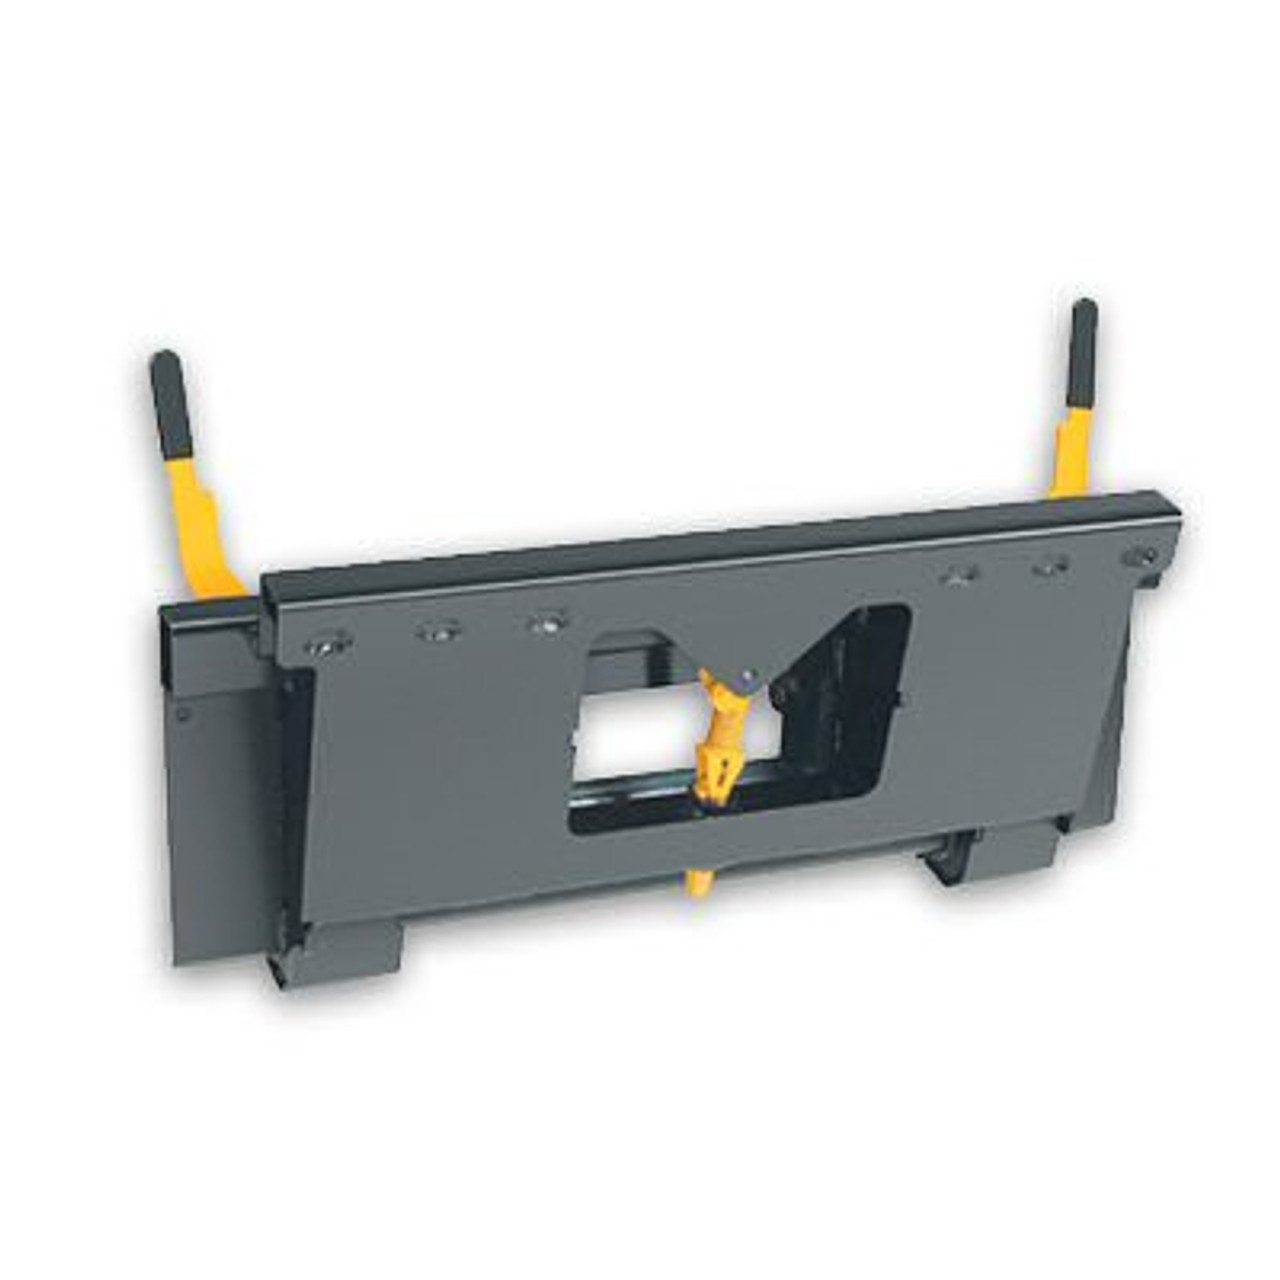 Mustang Skid Steer Universal Mount to Old Style Single Pin Mounting